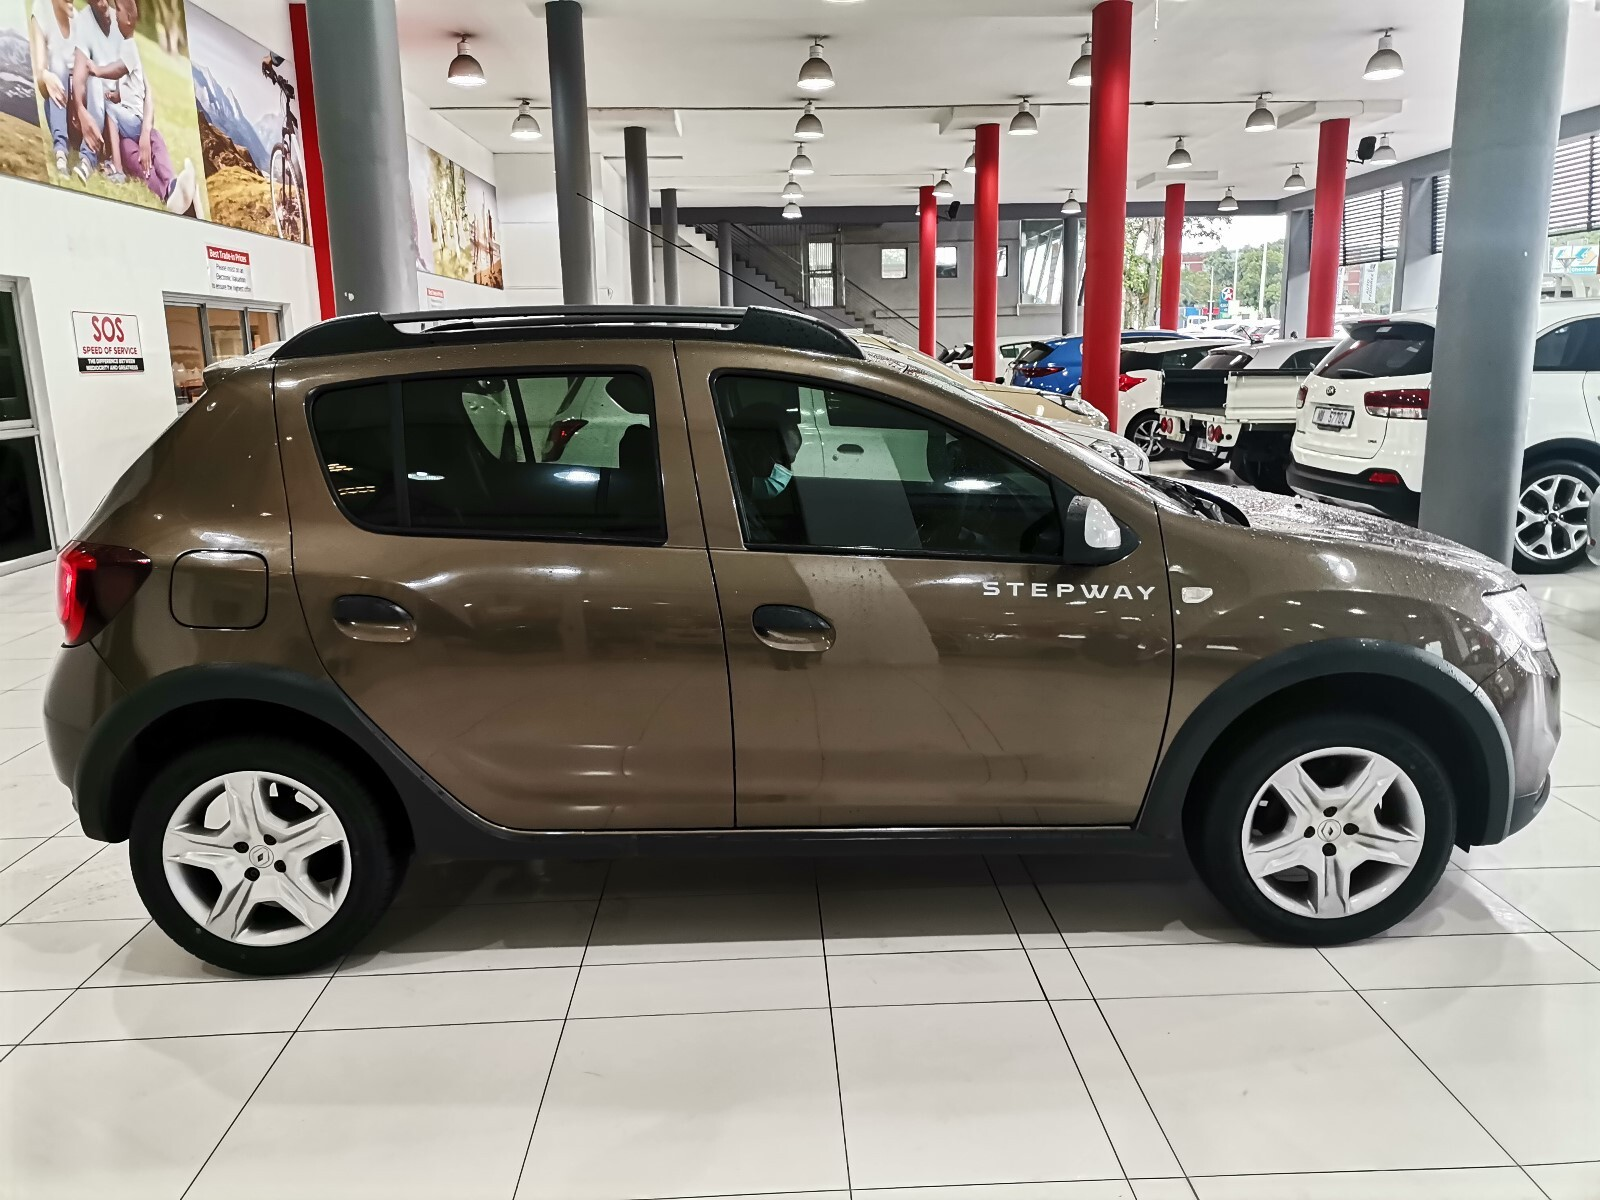 RENAULT 900T STEPWAY EXPRESSION Pinetown 4307425